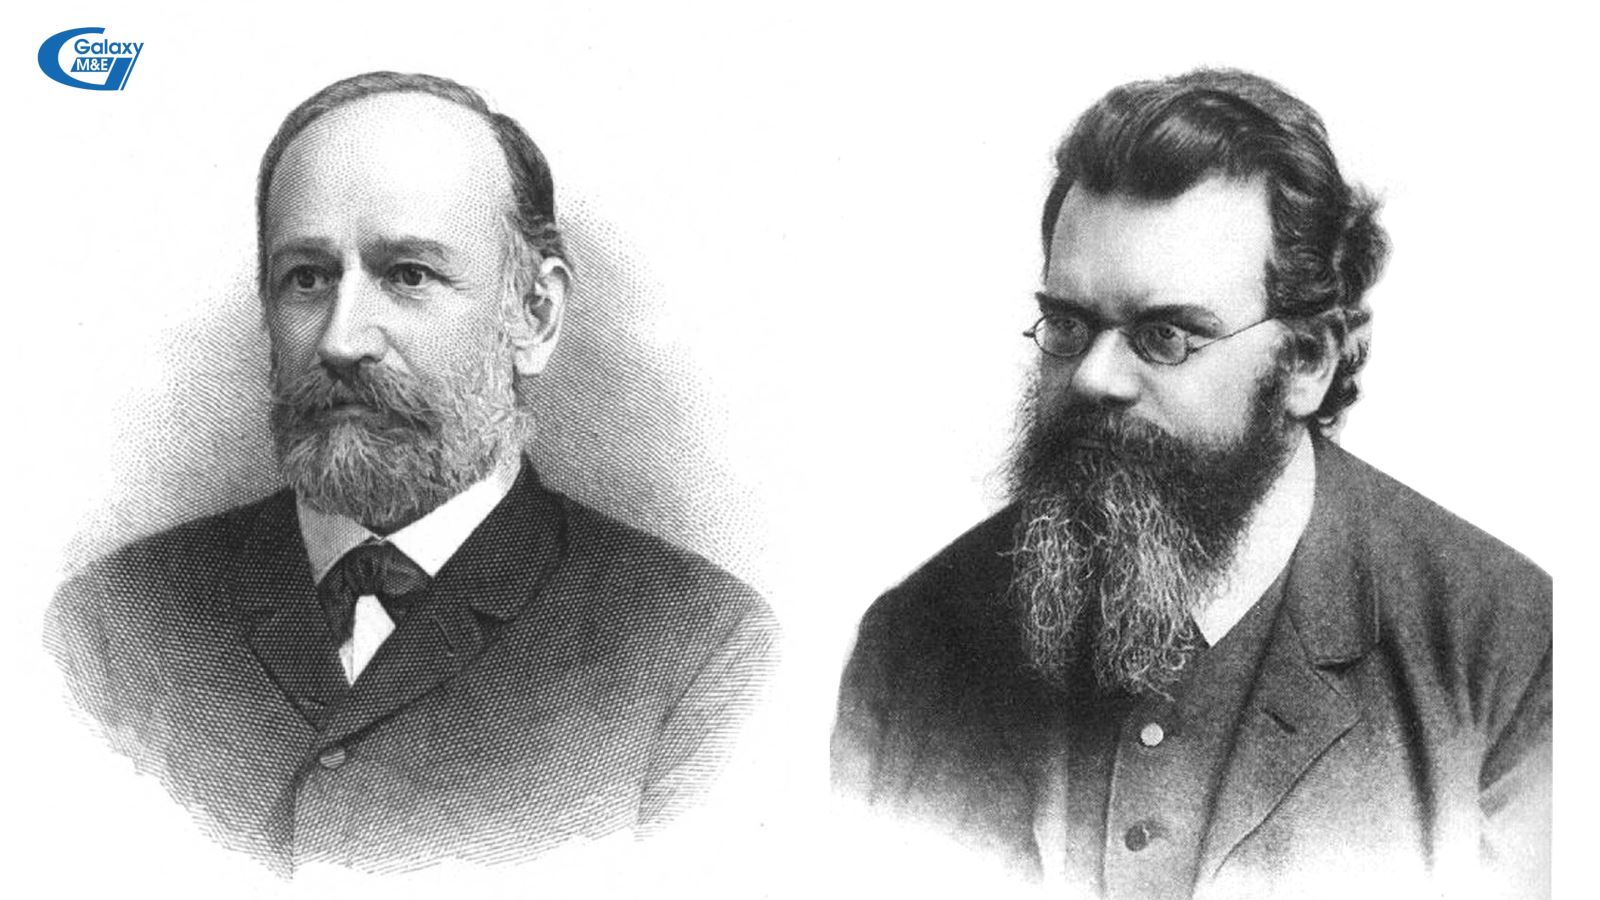 Physicist Josef Stefan (1835 - 1893) on the left and Ludwig Eduard Boltzmann (1844 - 1906) on the right.